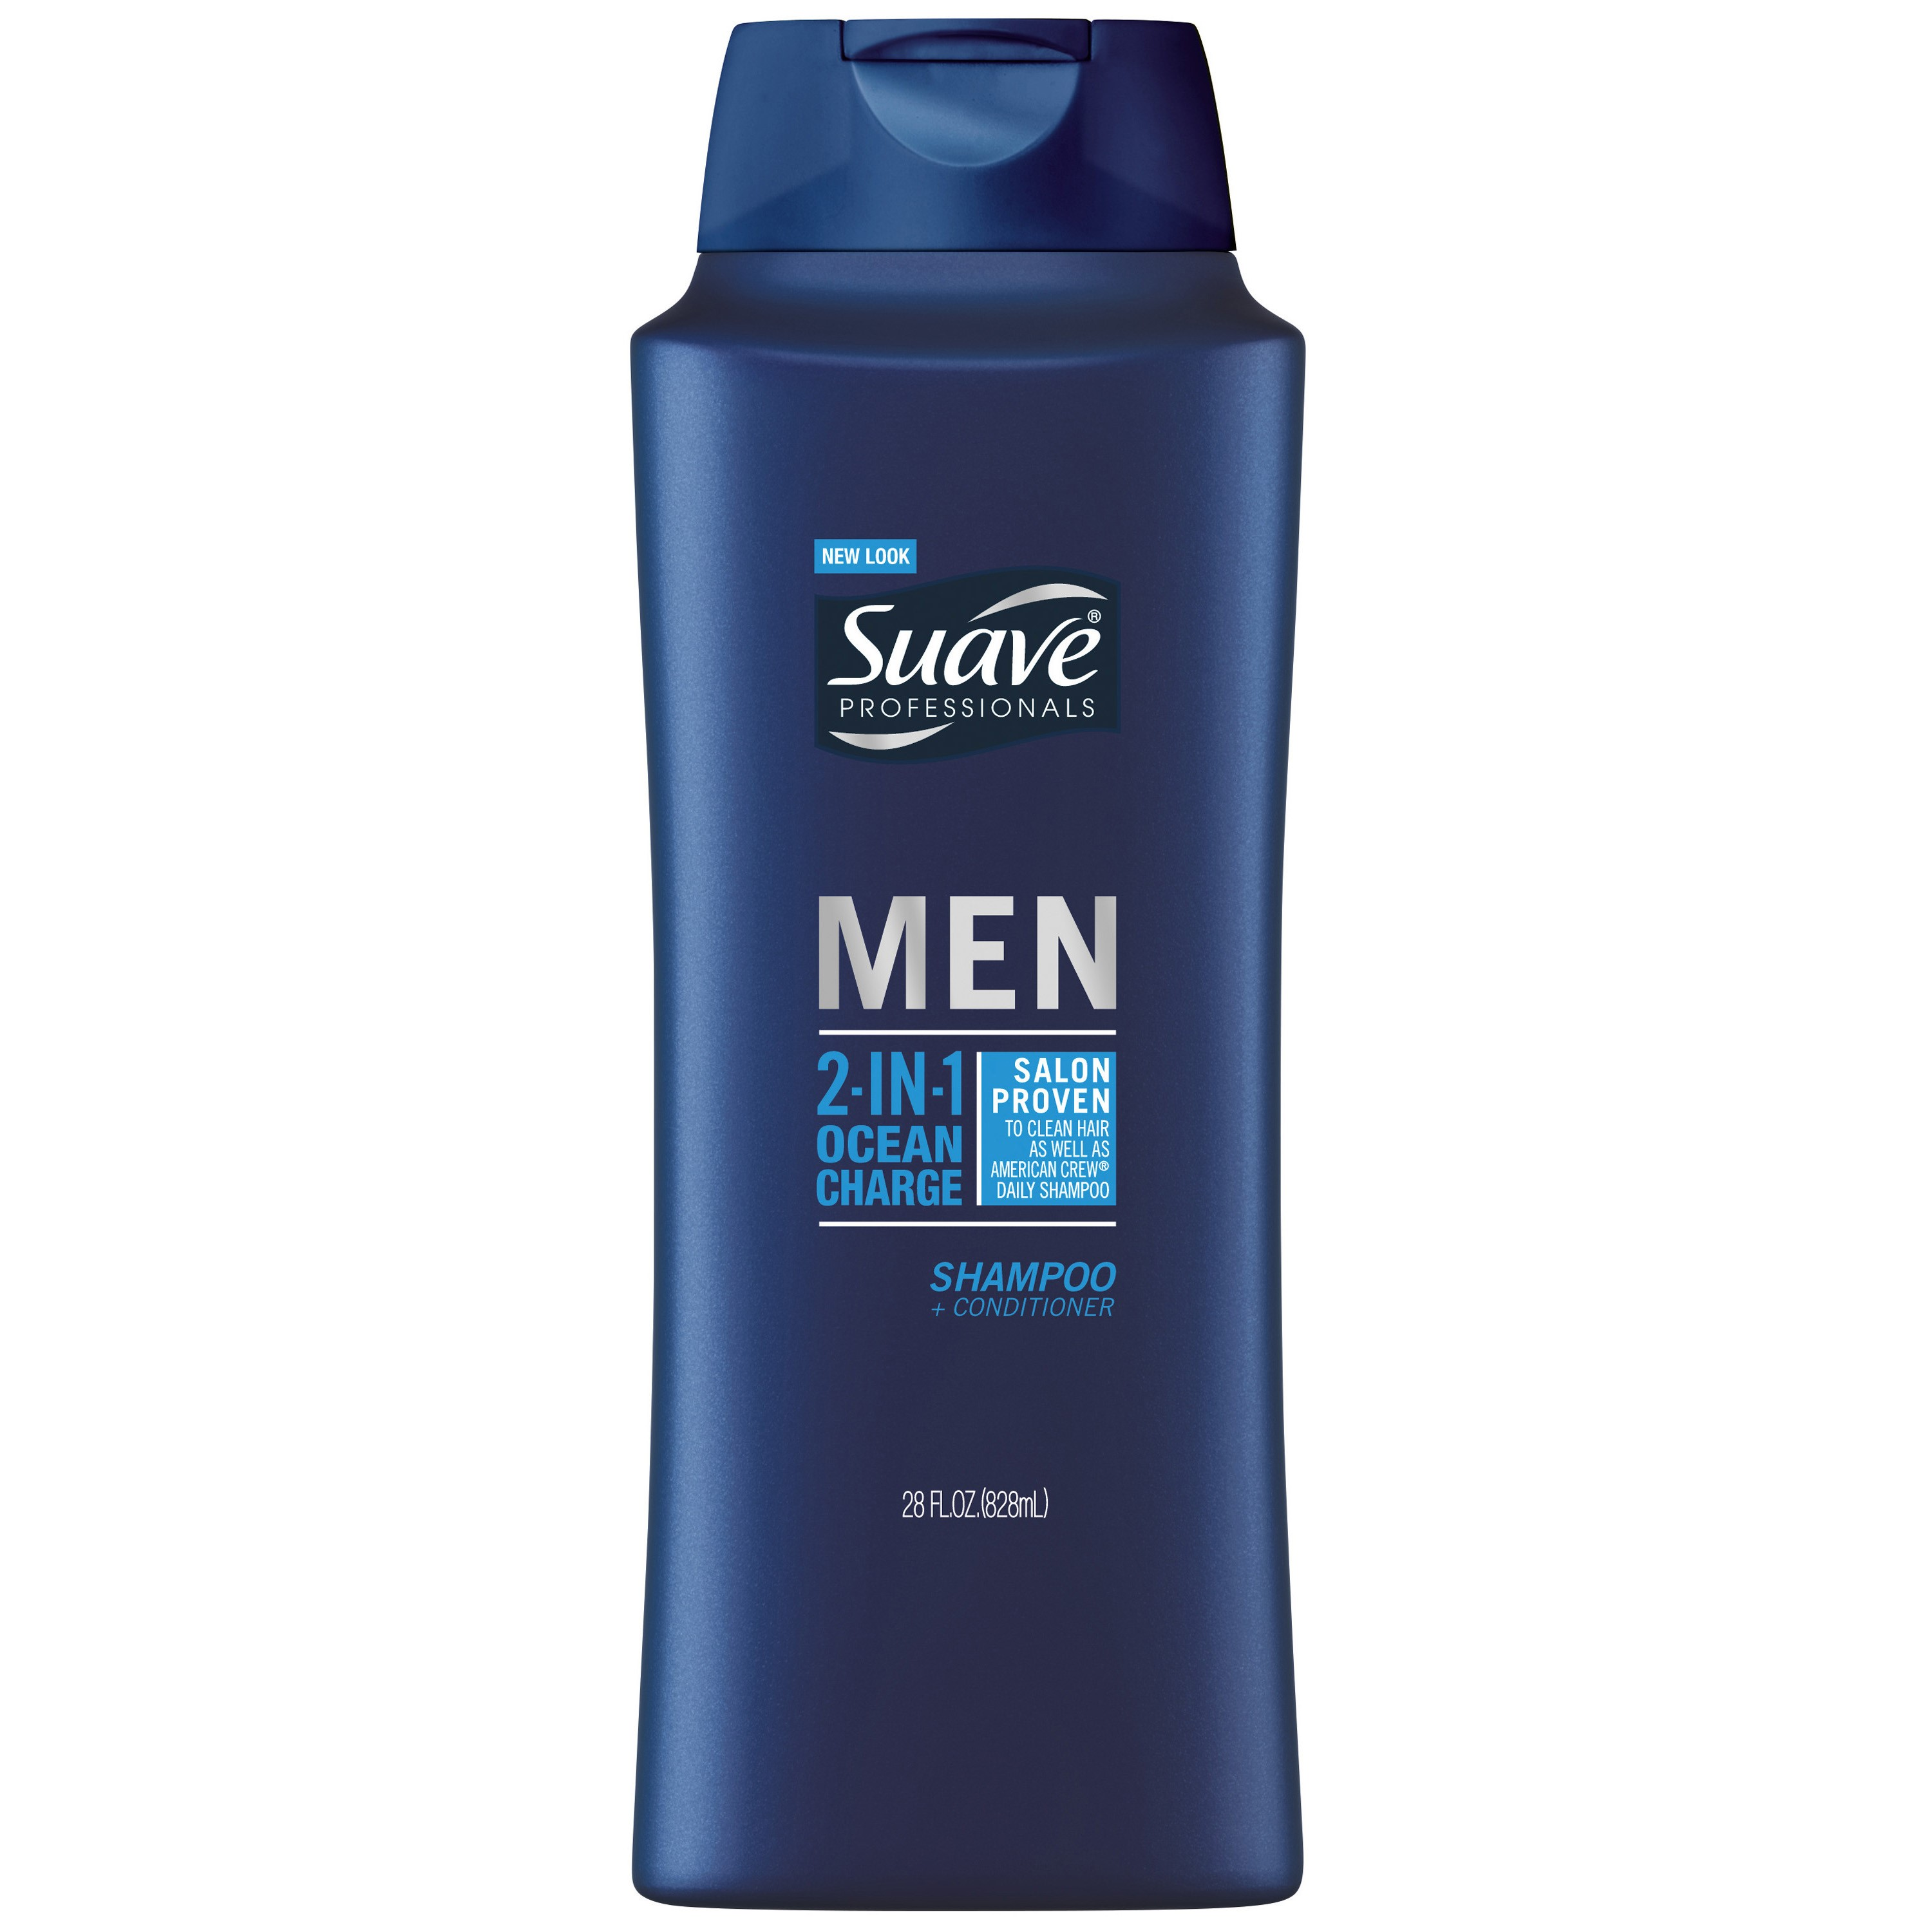 Suave Men 2-in-1 Shampoo & Conditioner, Ocean Charge, 28 Oz